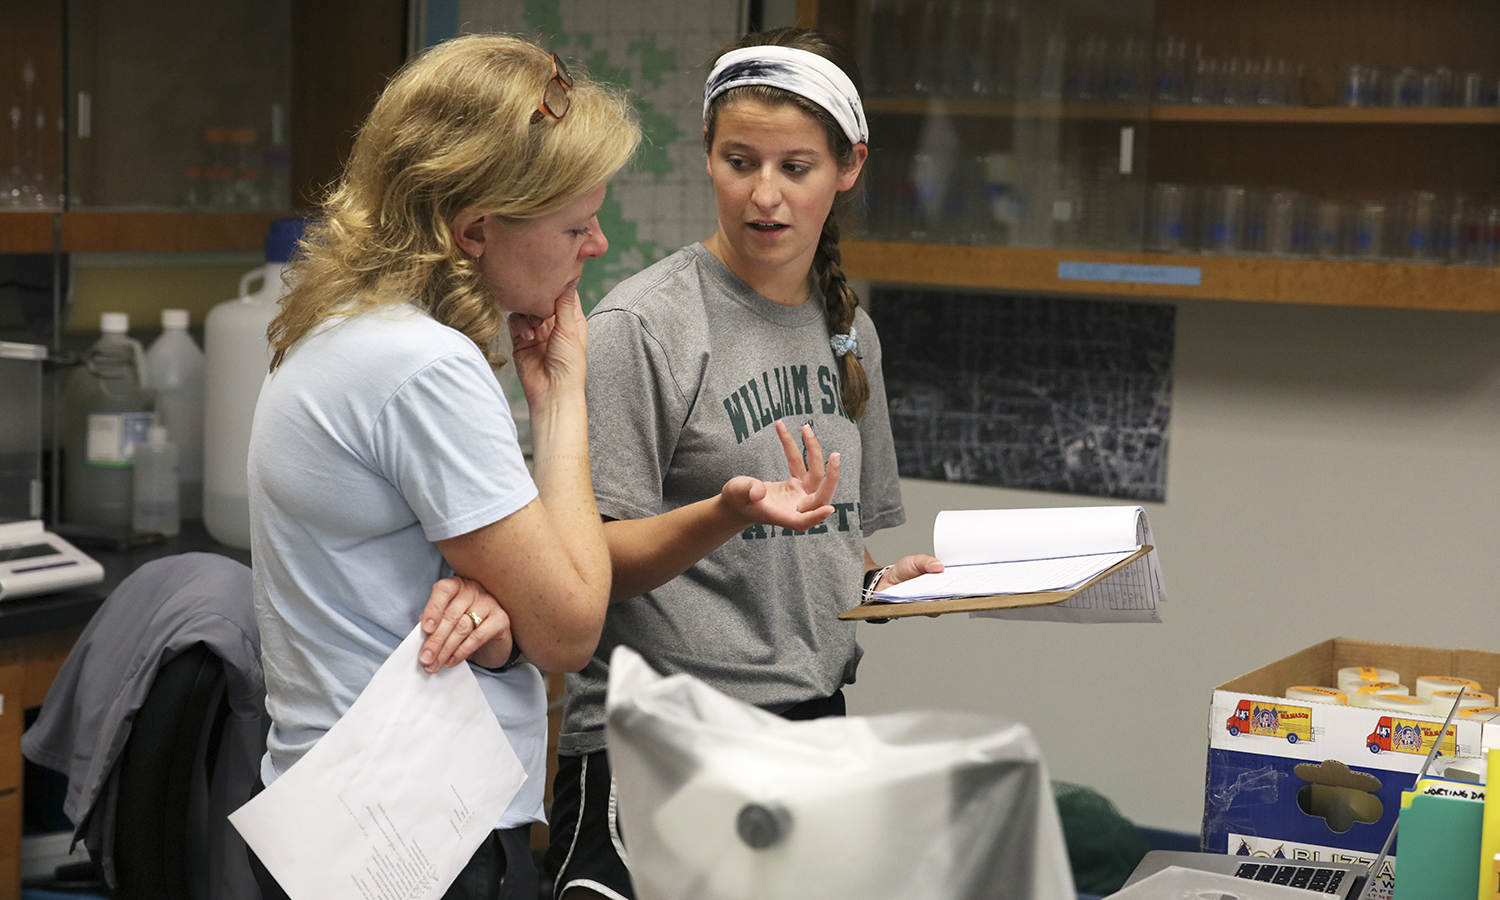 Director of Introductory Biology Labratories Susan Cushman (left) and Kate Foley '20 discuss findings on Foley's research on the Round Goby Fish.